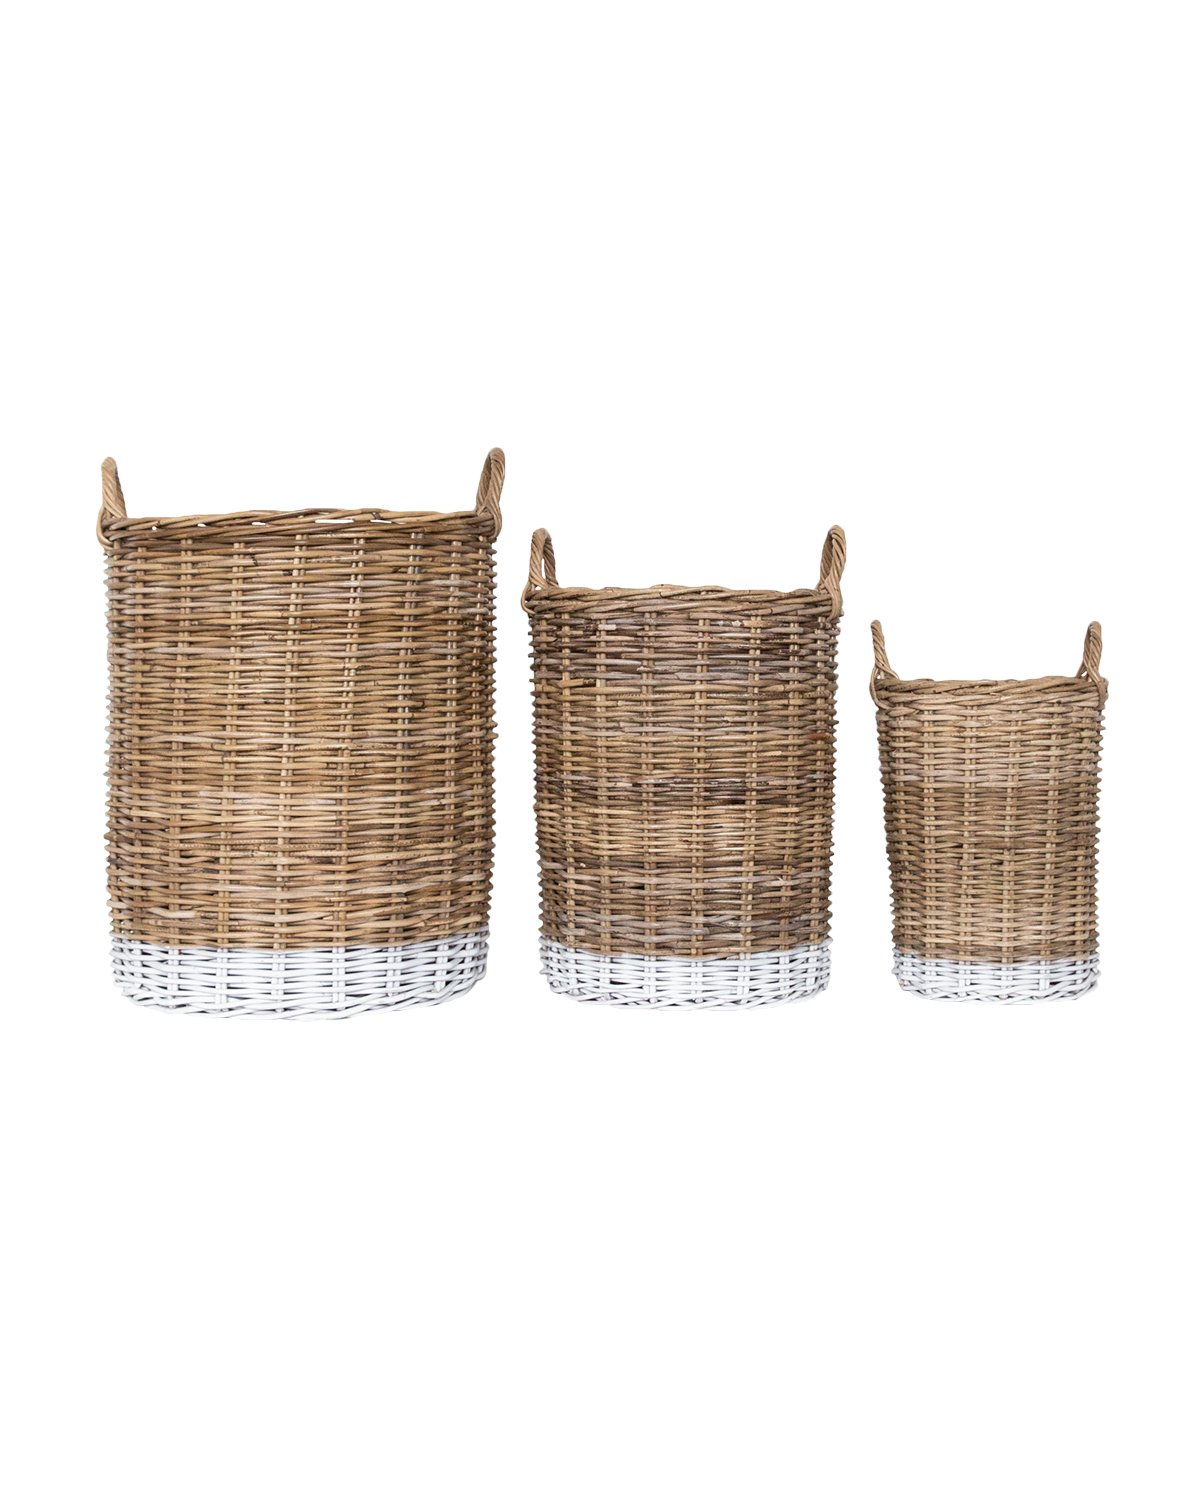 dipped_rattan_basket5.jpg